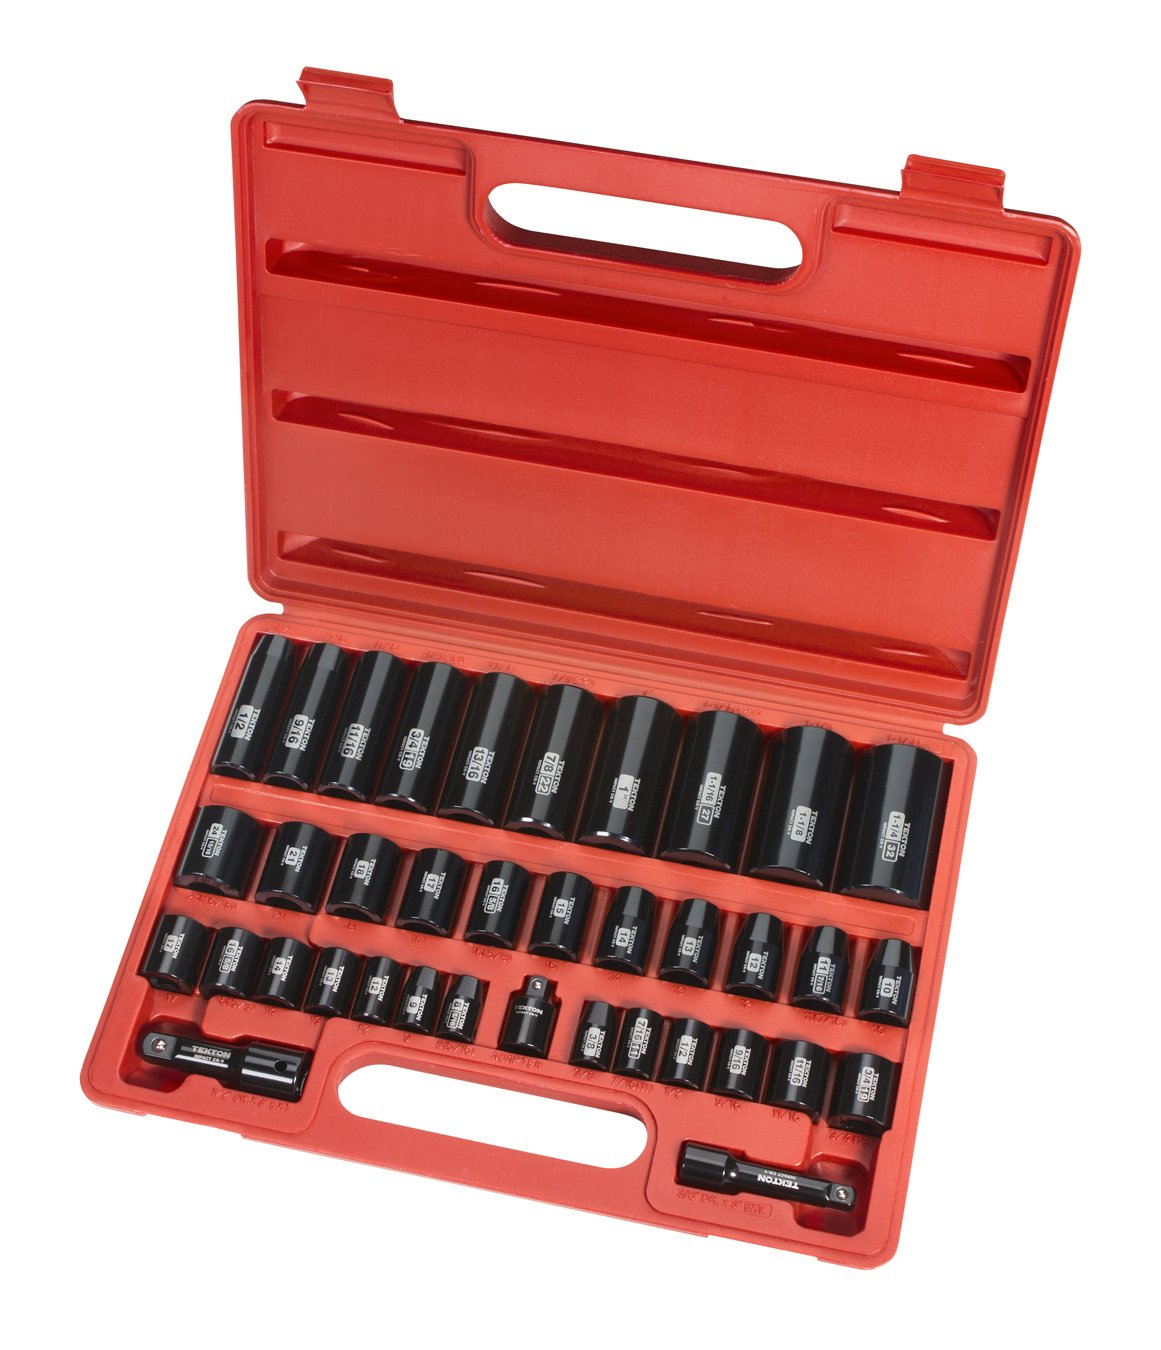 TEKTON 3/8-Inch and 1/2-Inch Drive Impact Socket Set, Inch/Metric, Cr-V, 6-Point, 3/8-Inch - 1-1/4-Inch, 8 mm - 32 mm, 38-Piece | 4888